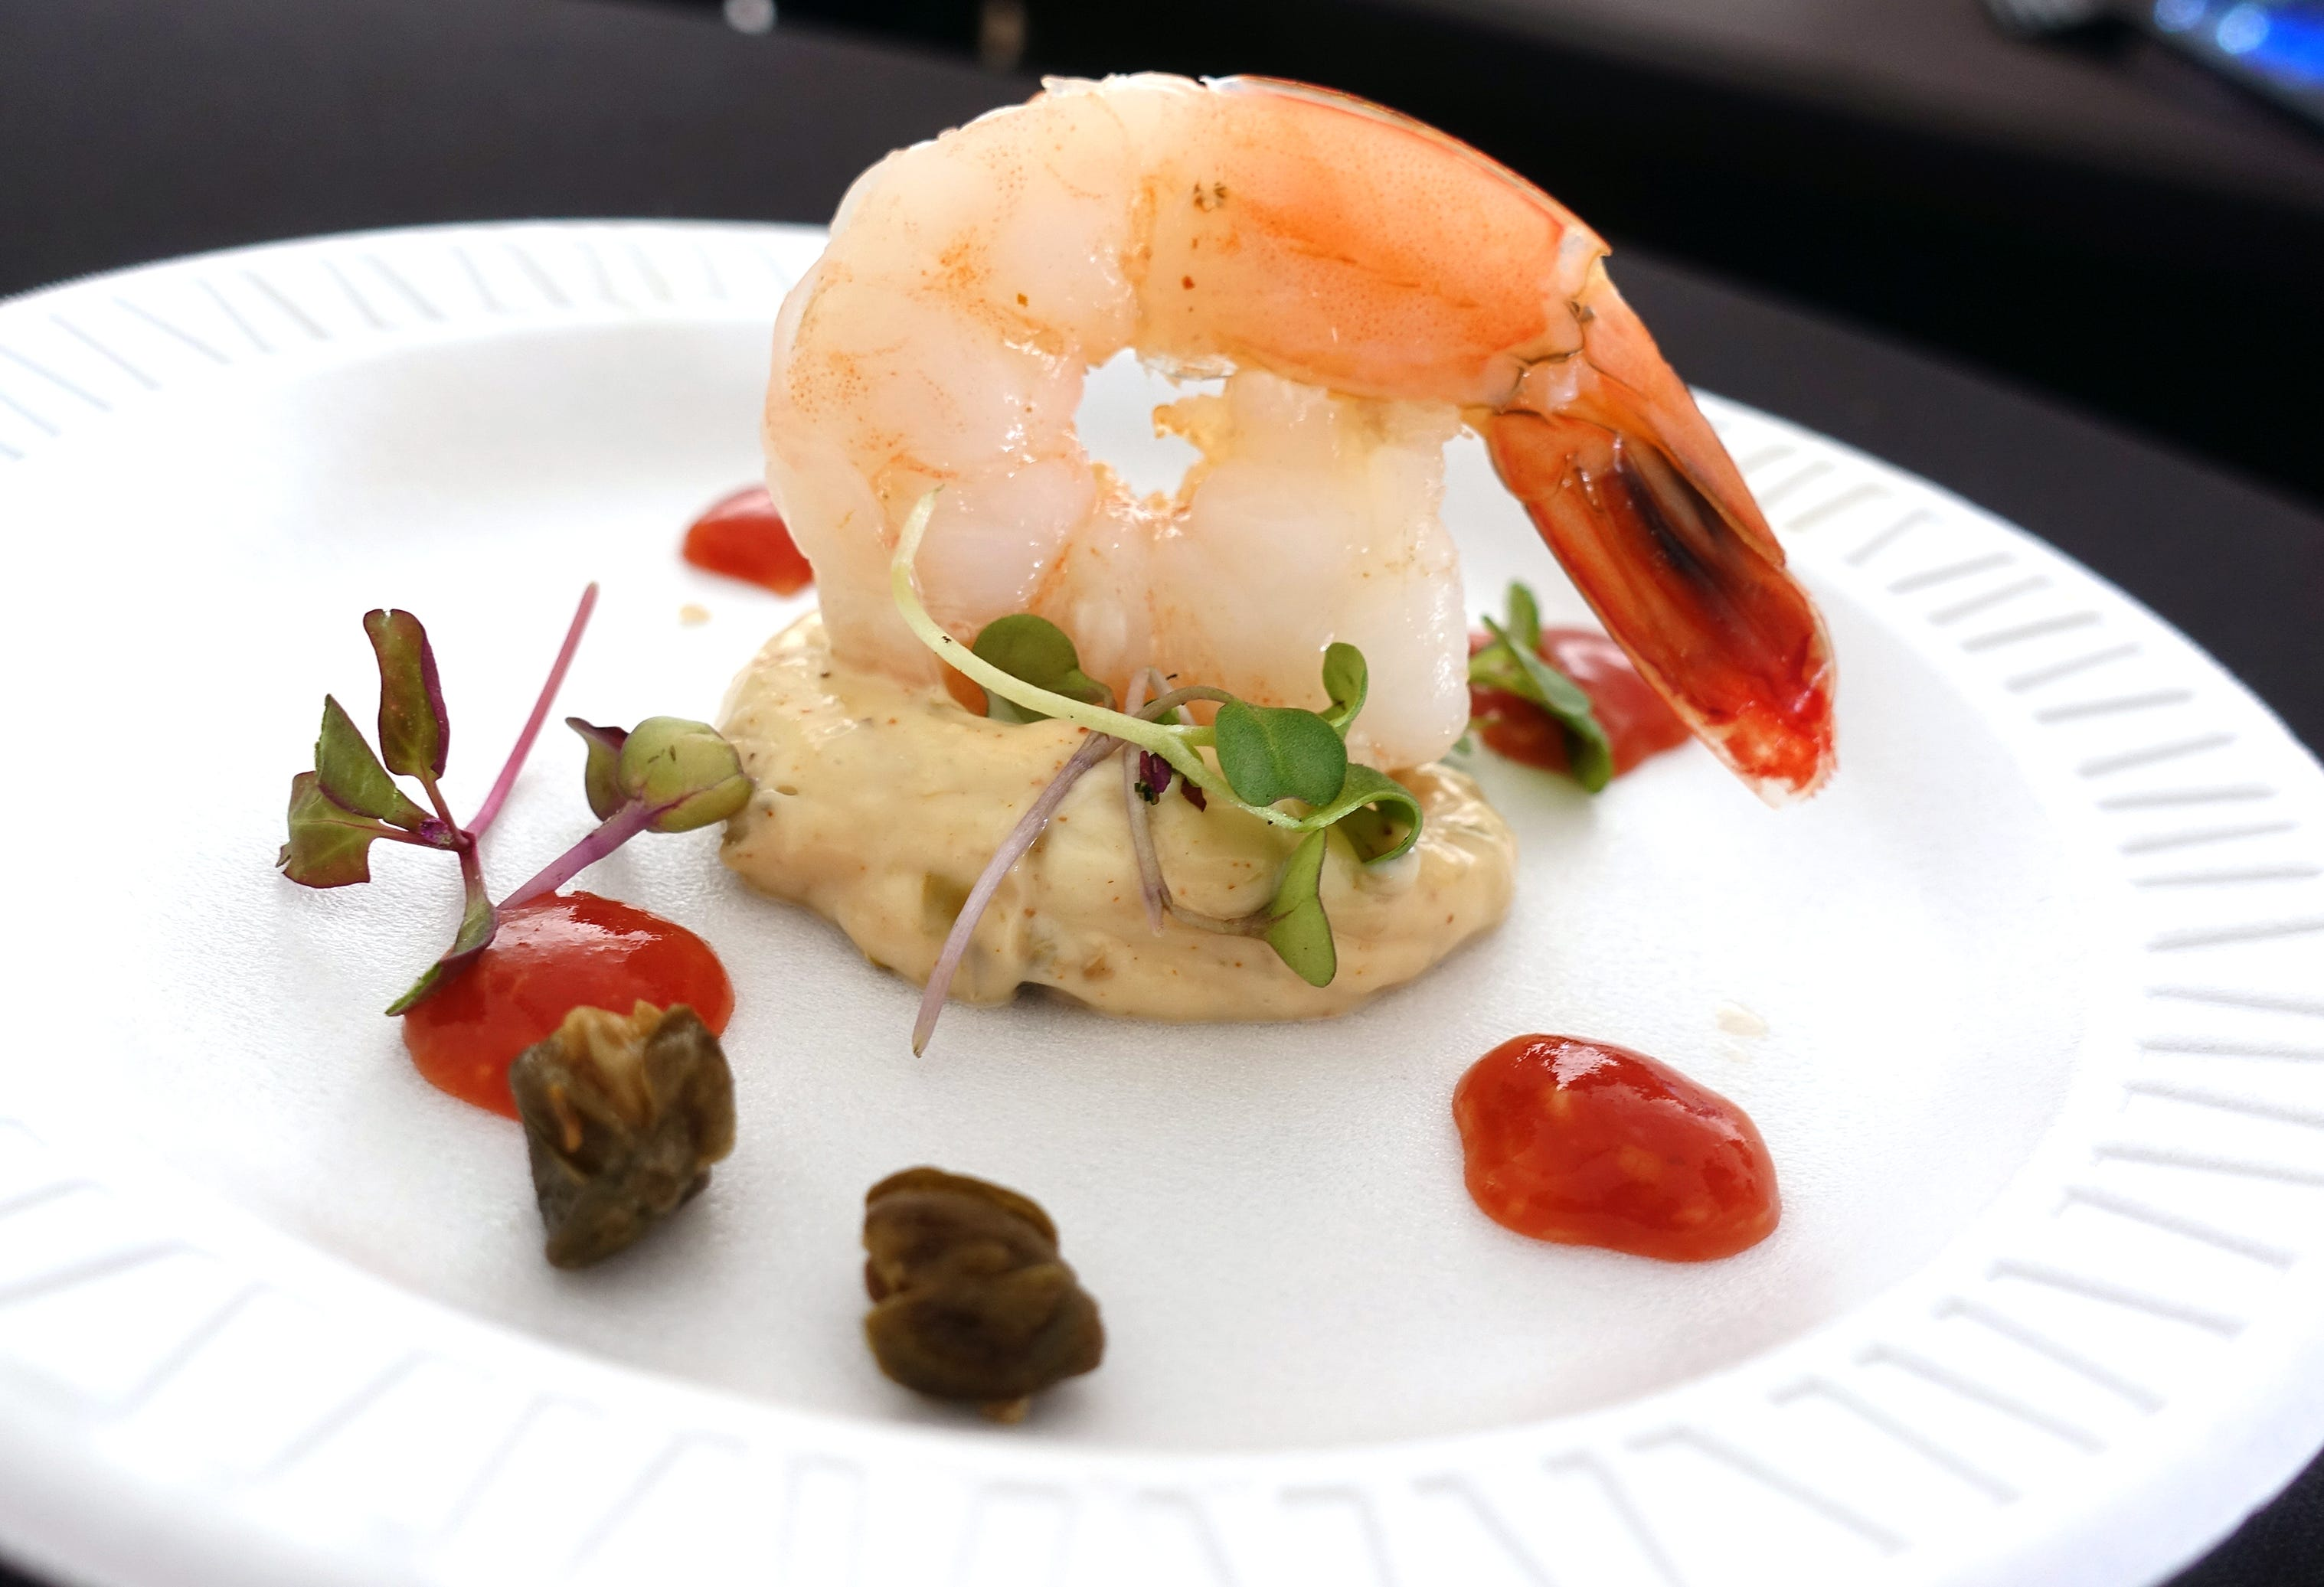 Poached shrimp with house remoulade, cocktail sauce, fried capers and microgreens from Mingo's Louisiana Kitchen at azcentral Wine & Food Experience at WestWorld of Scottsdale Saturday, Nov. 3, 2018.